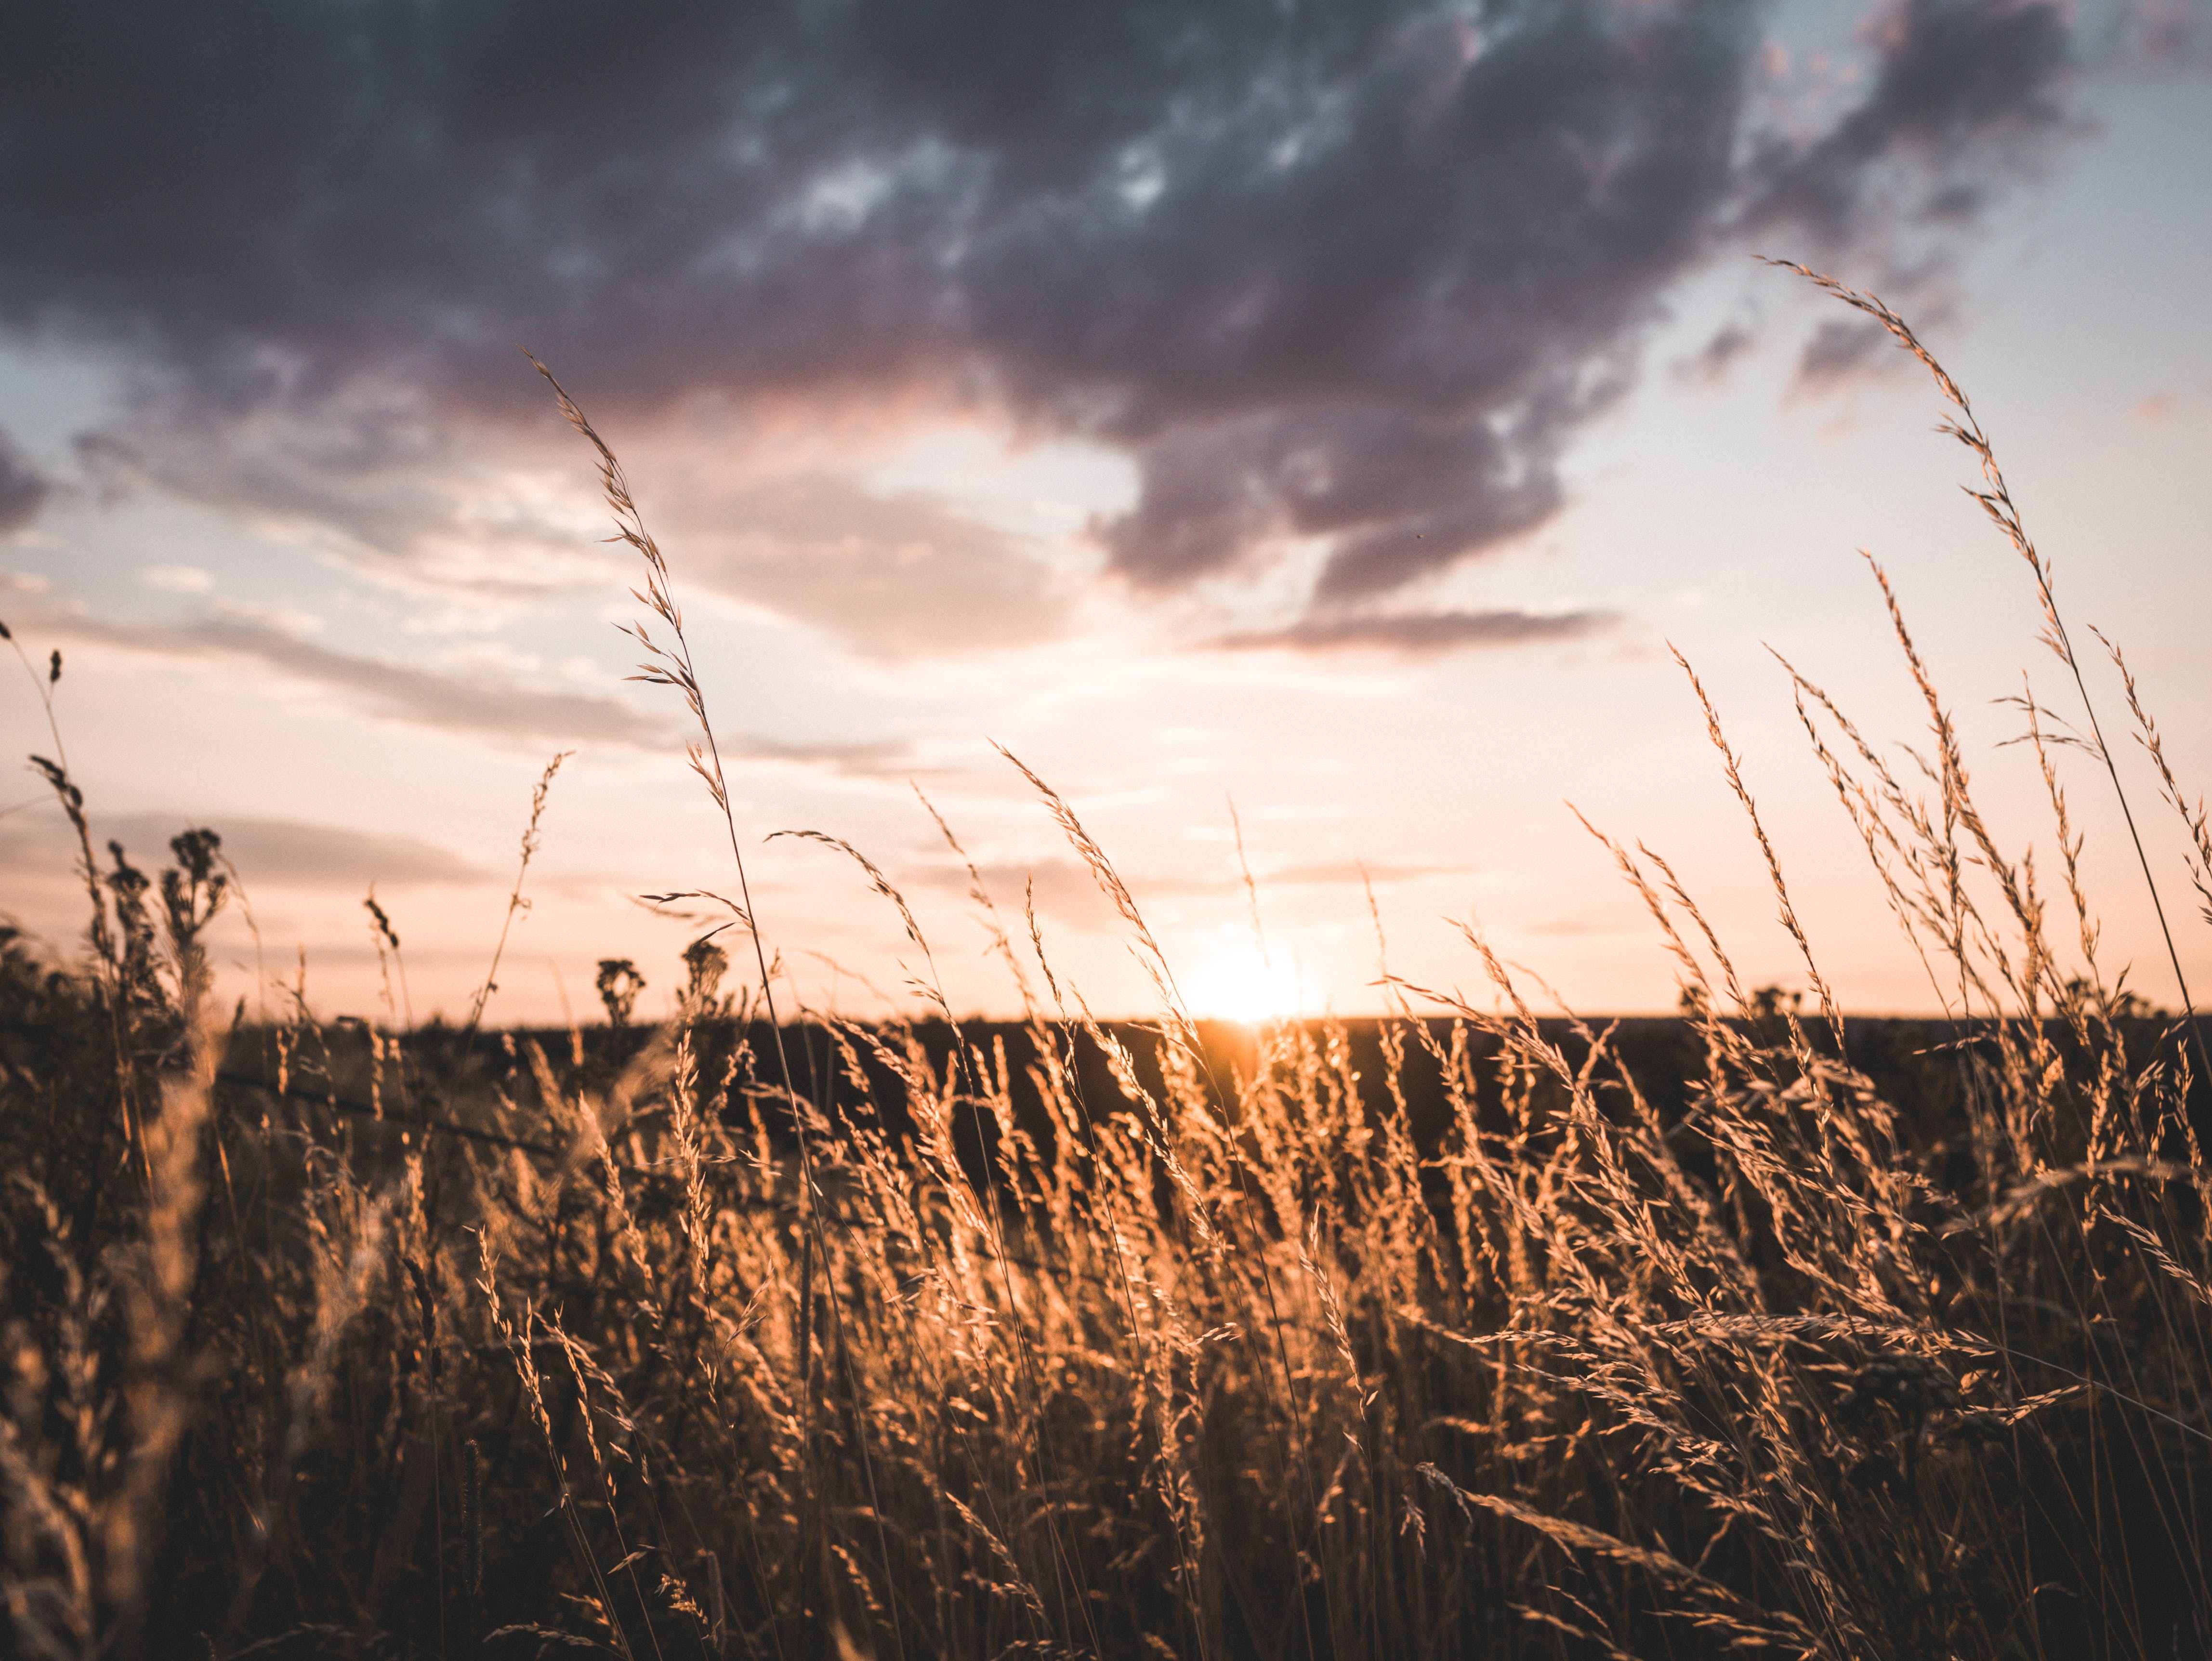 Landscape Photo of Brown Grains during Sunset